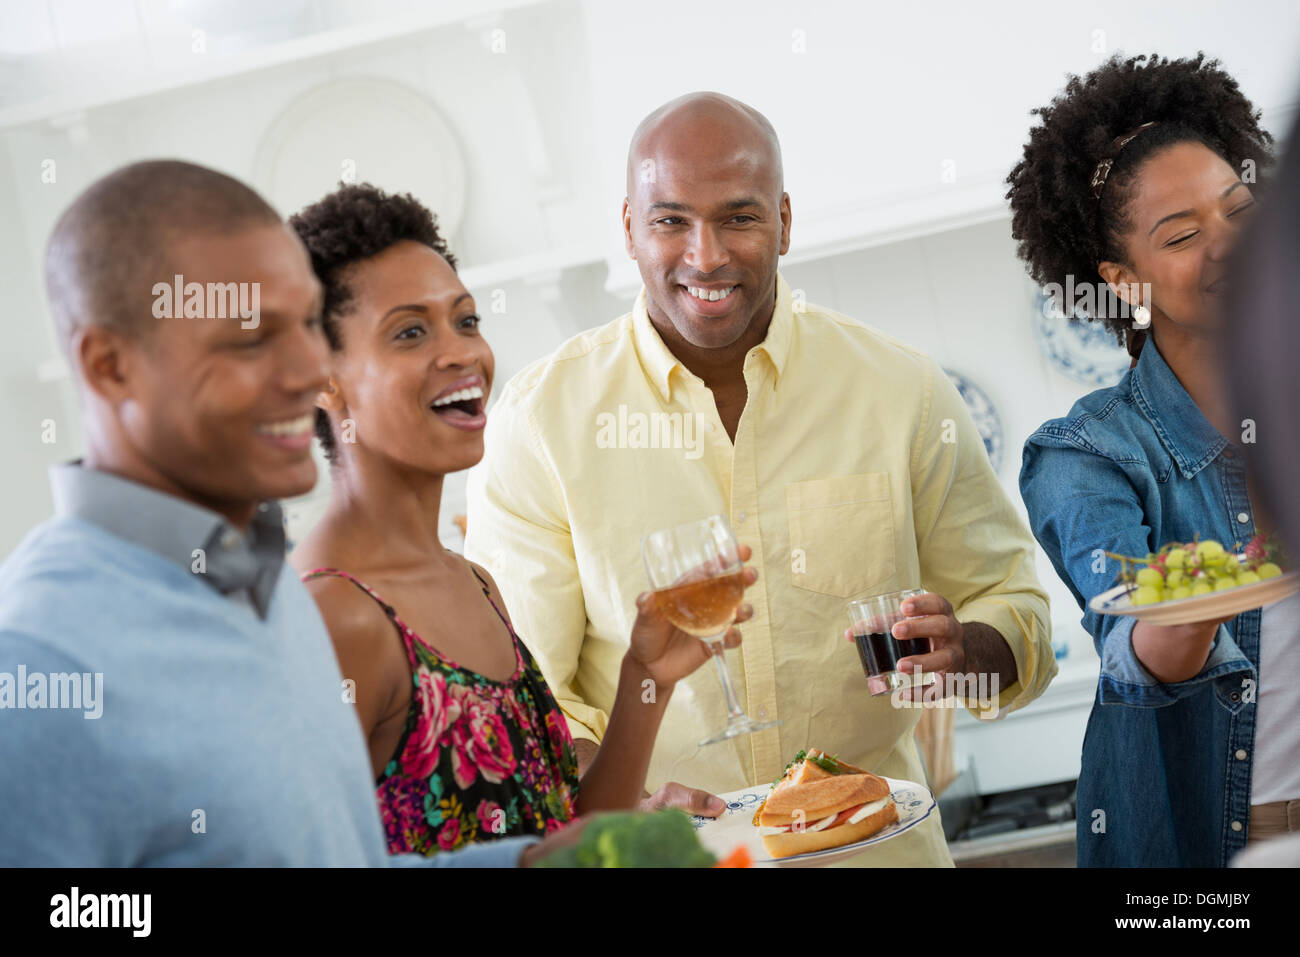 office party stock photos office party stock images alamy an informal office party people handing plates of food across a buffet table